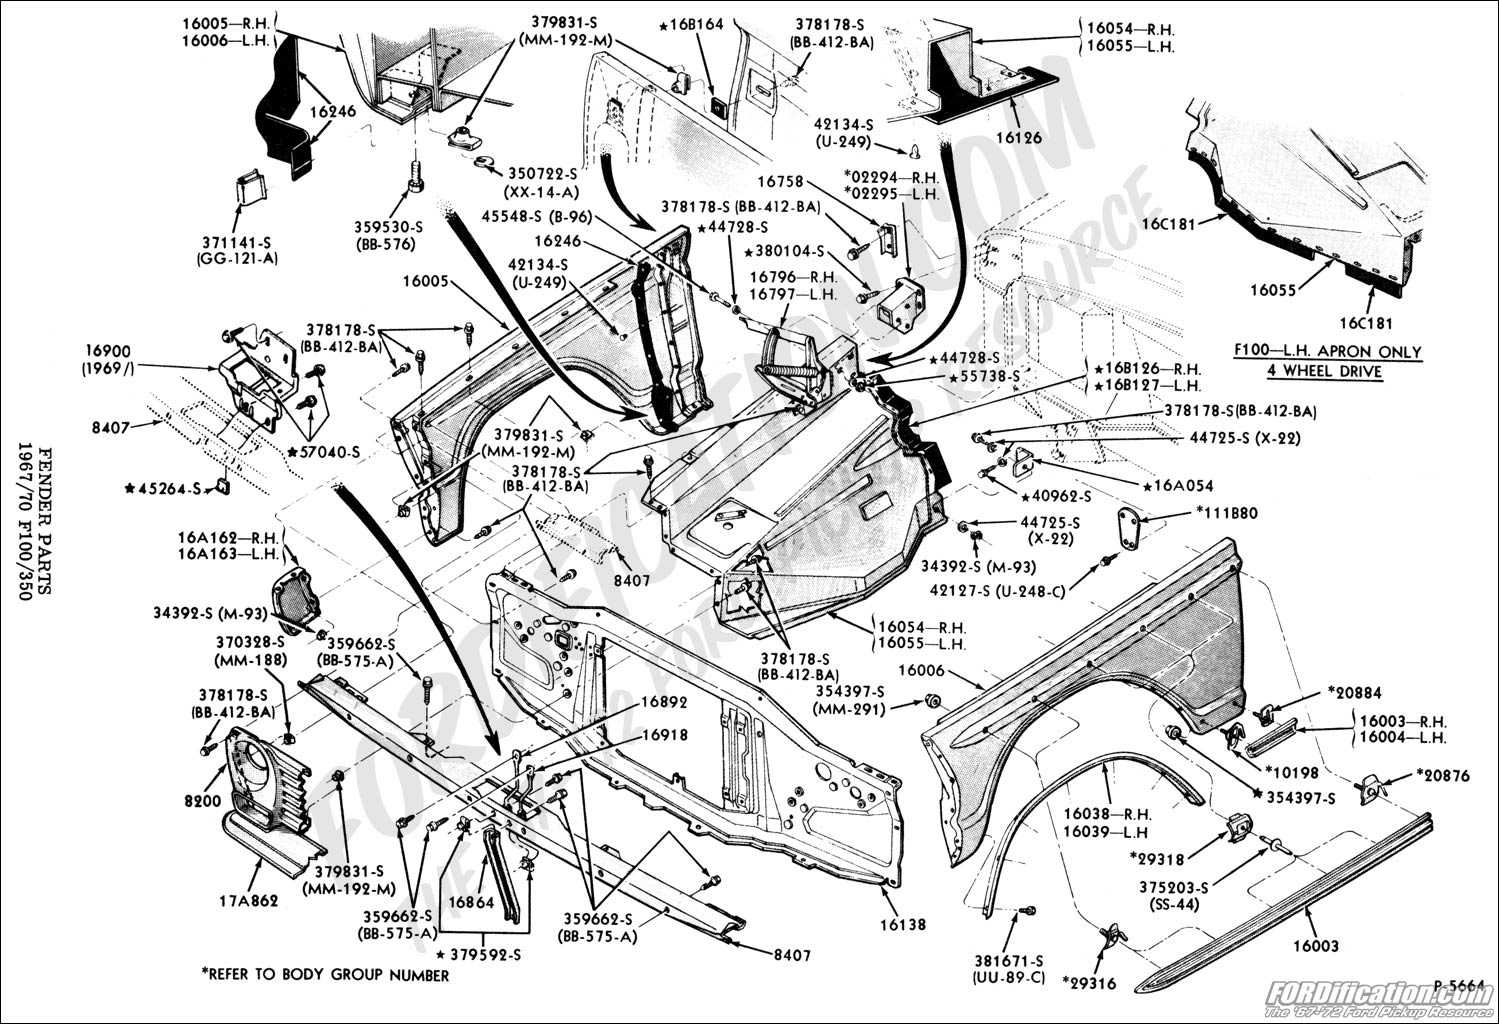 1997 ford thunderbird fuse box diagram furthermore 1969 ford mustang